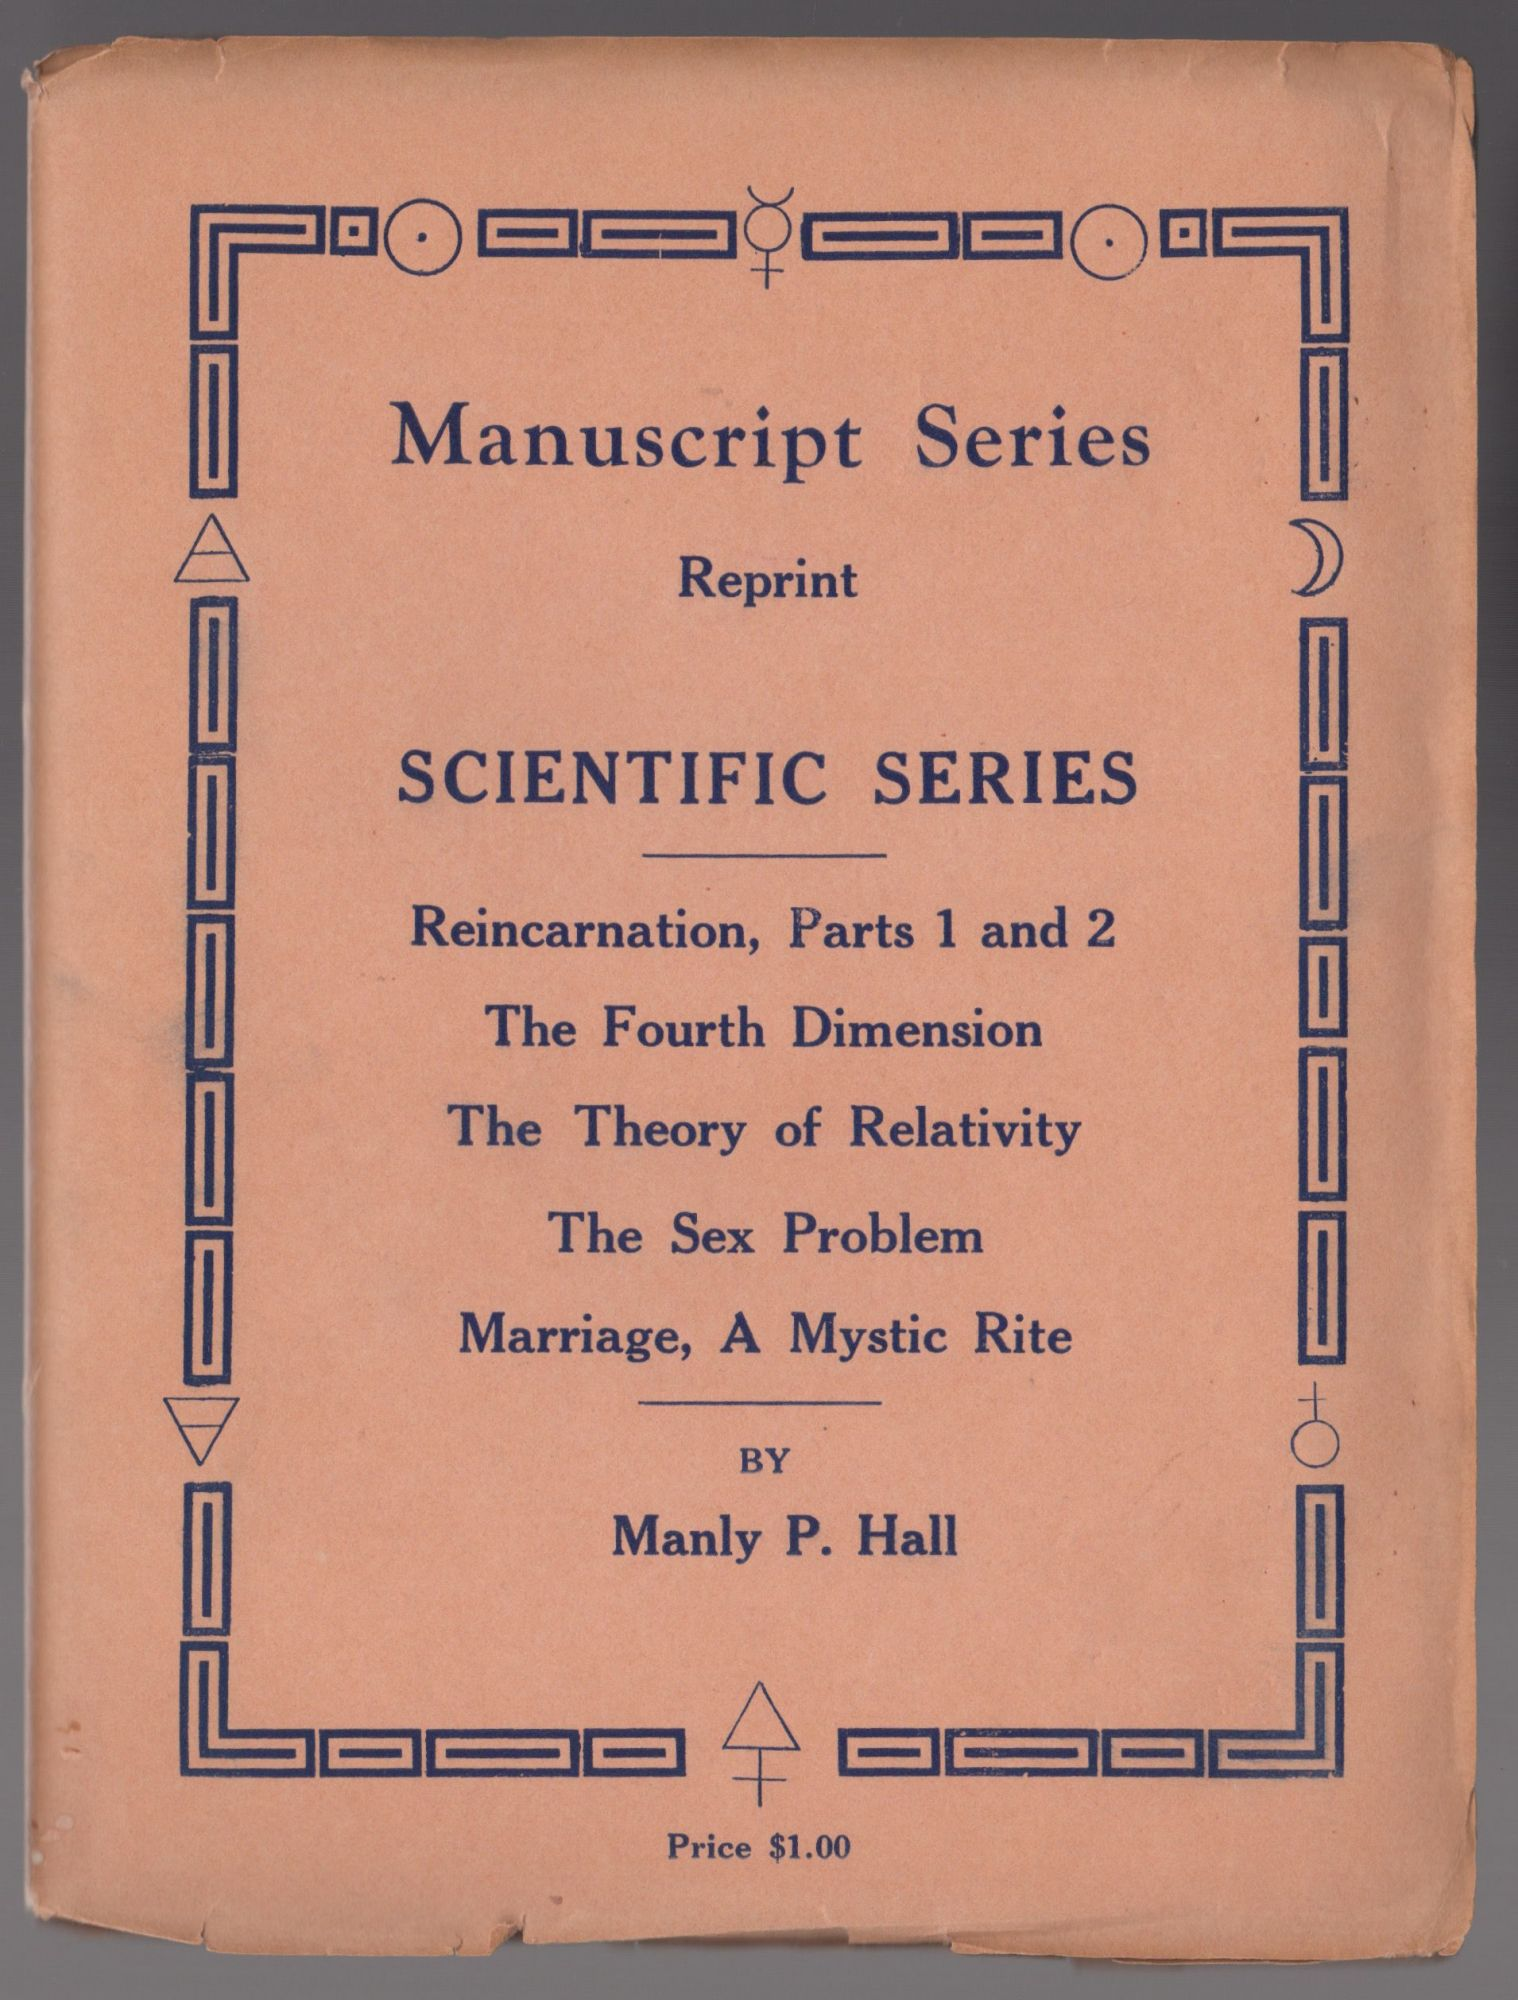 Manuscrip Series, Reprint, `scientific Series' six manuscript lectures